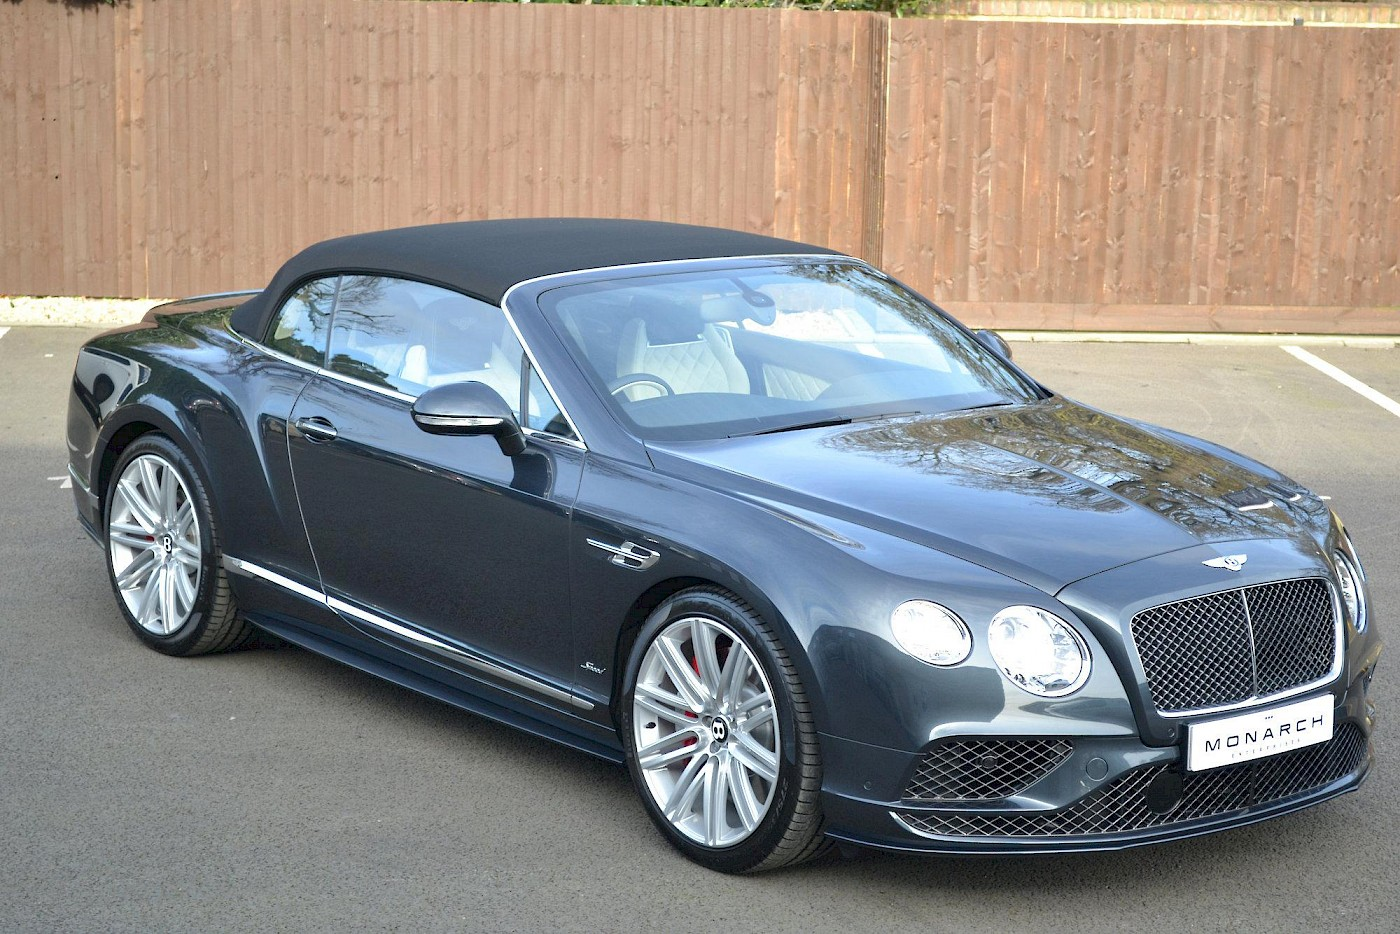 2016/16 Bentley Continental GT Speed convertible 13